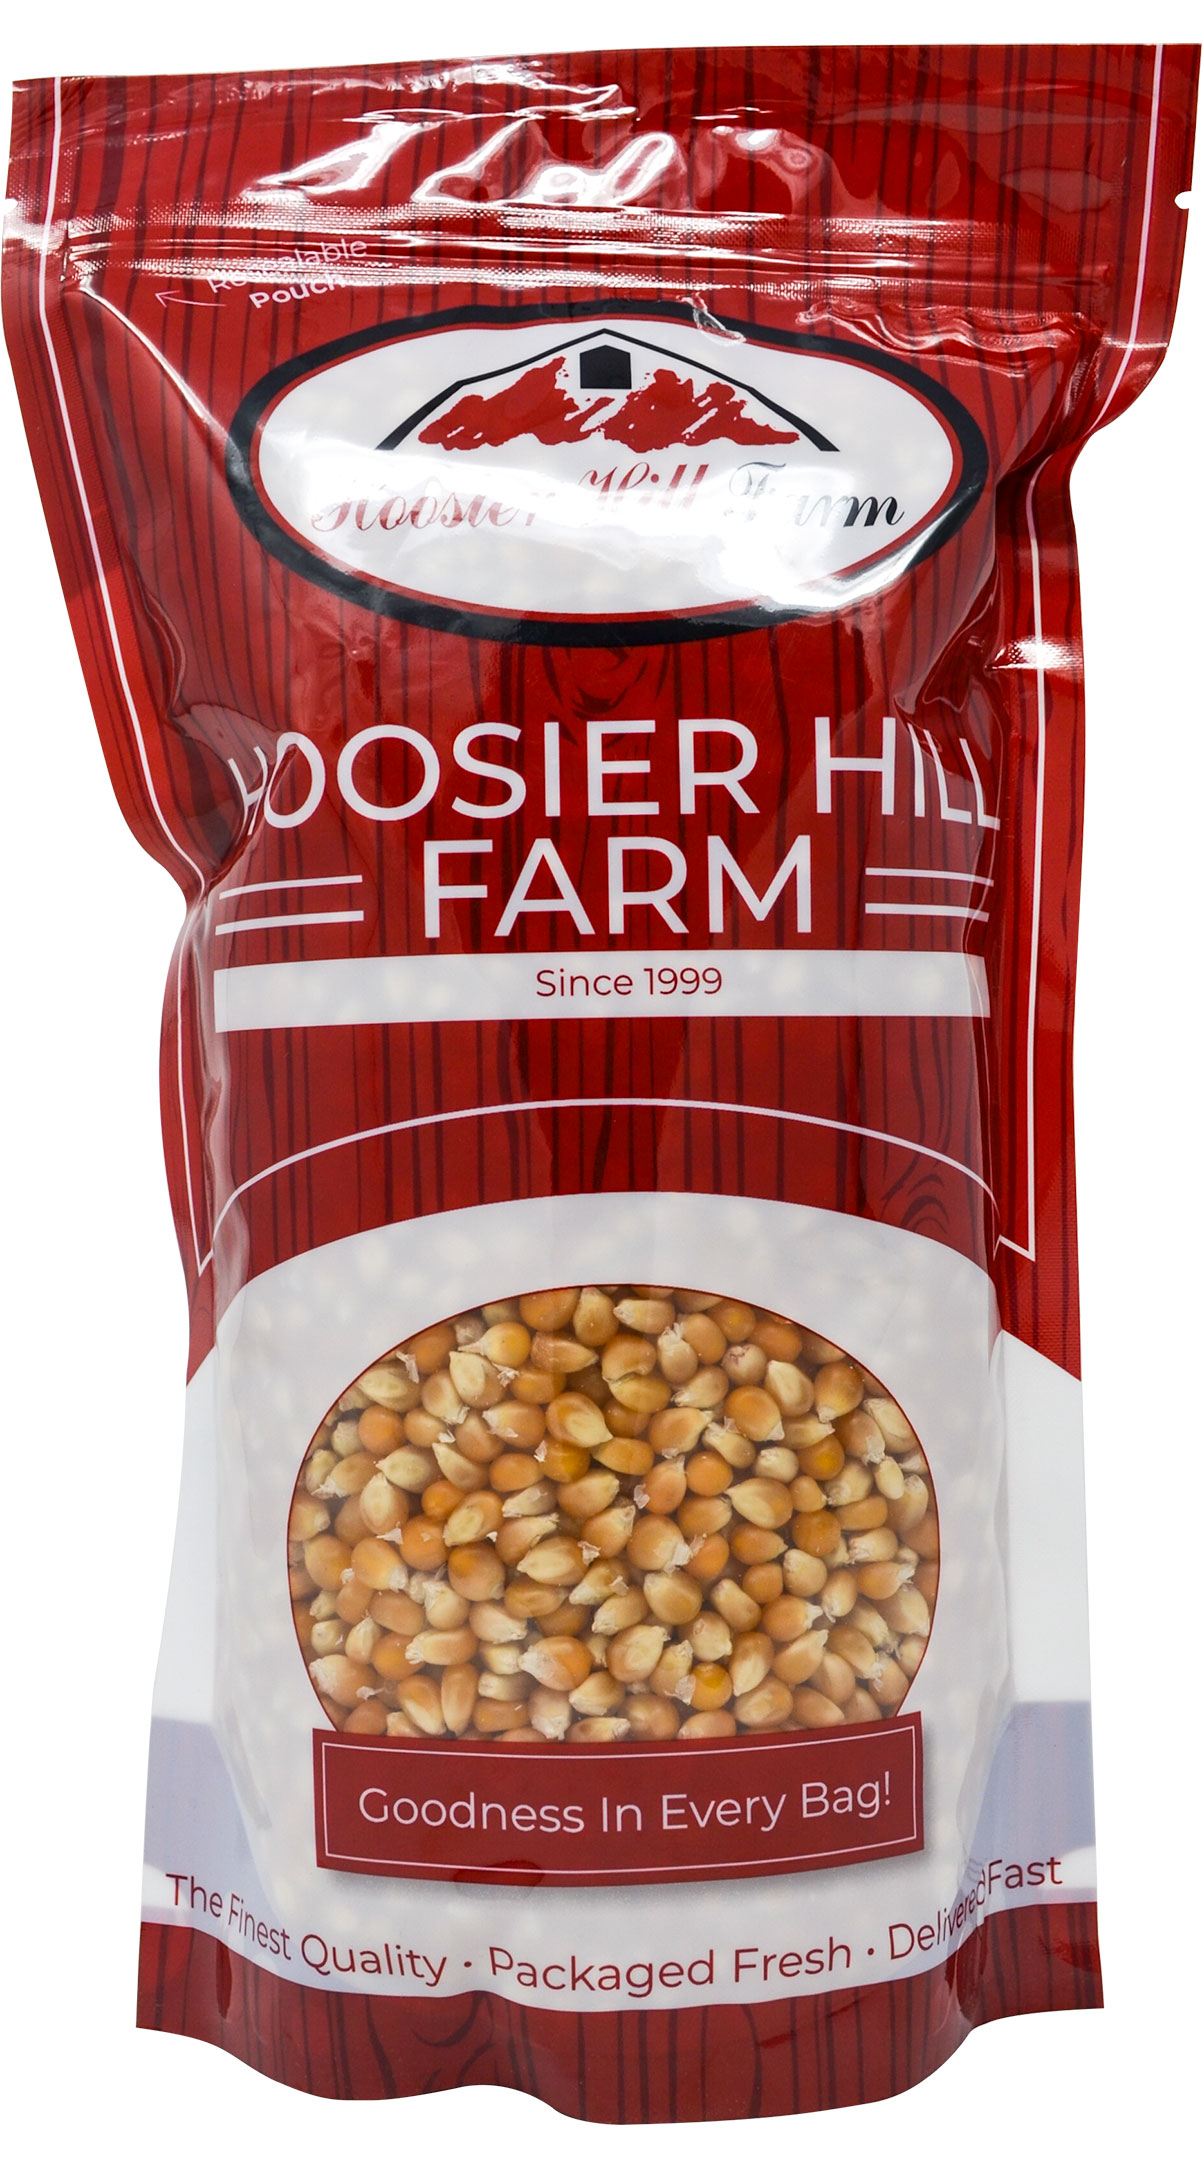 Hoosier Hill Farm Gourmet Popcorn Huge 6 lb. Family Size (Original Yellow)